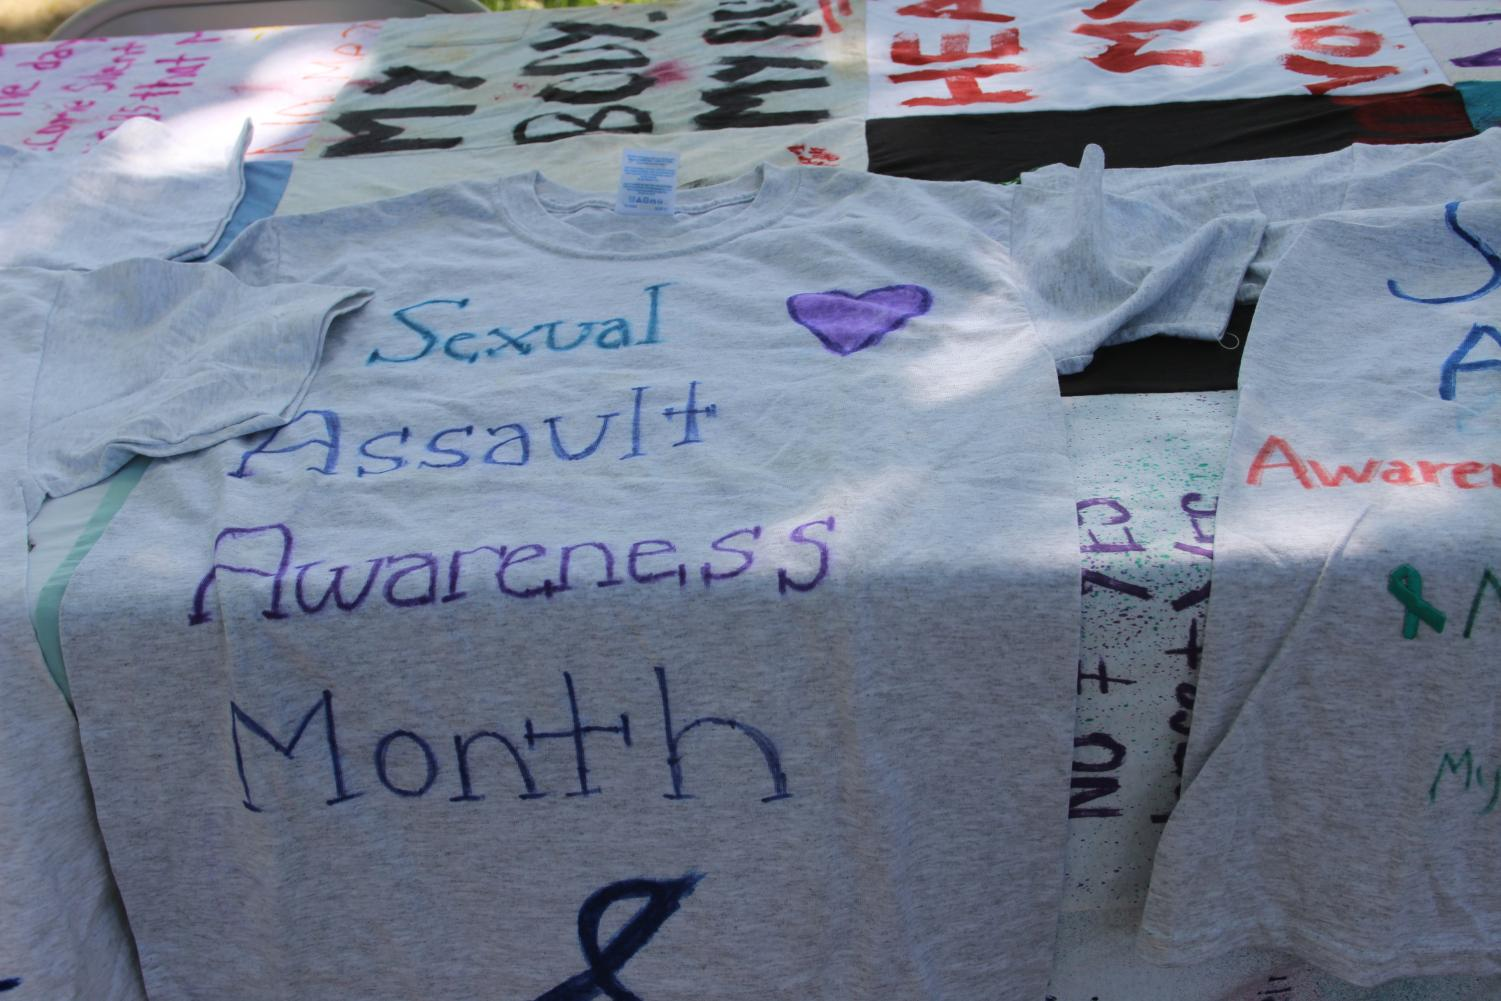 Students were able to write messages on shirts from a table by the quad.